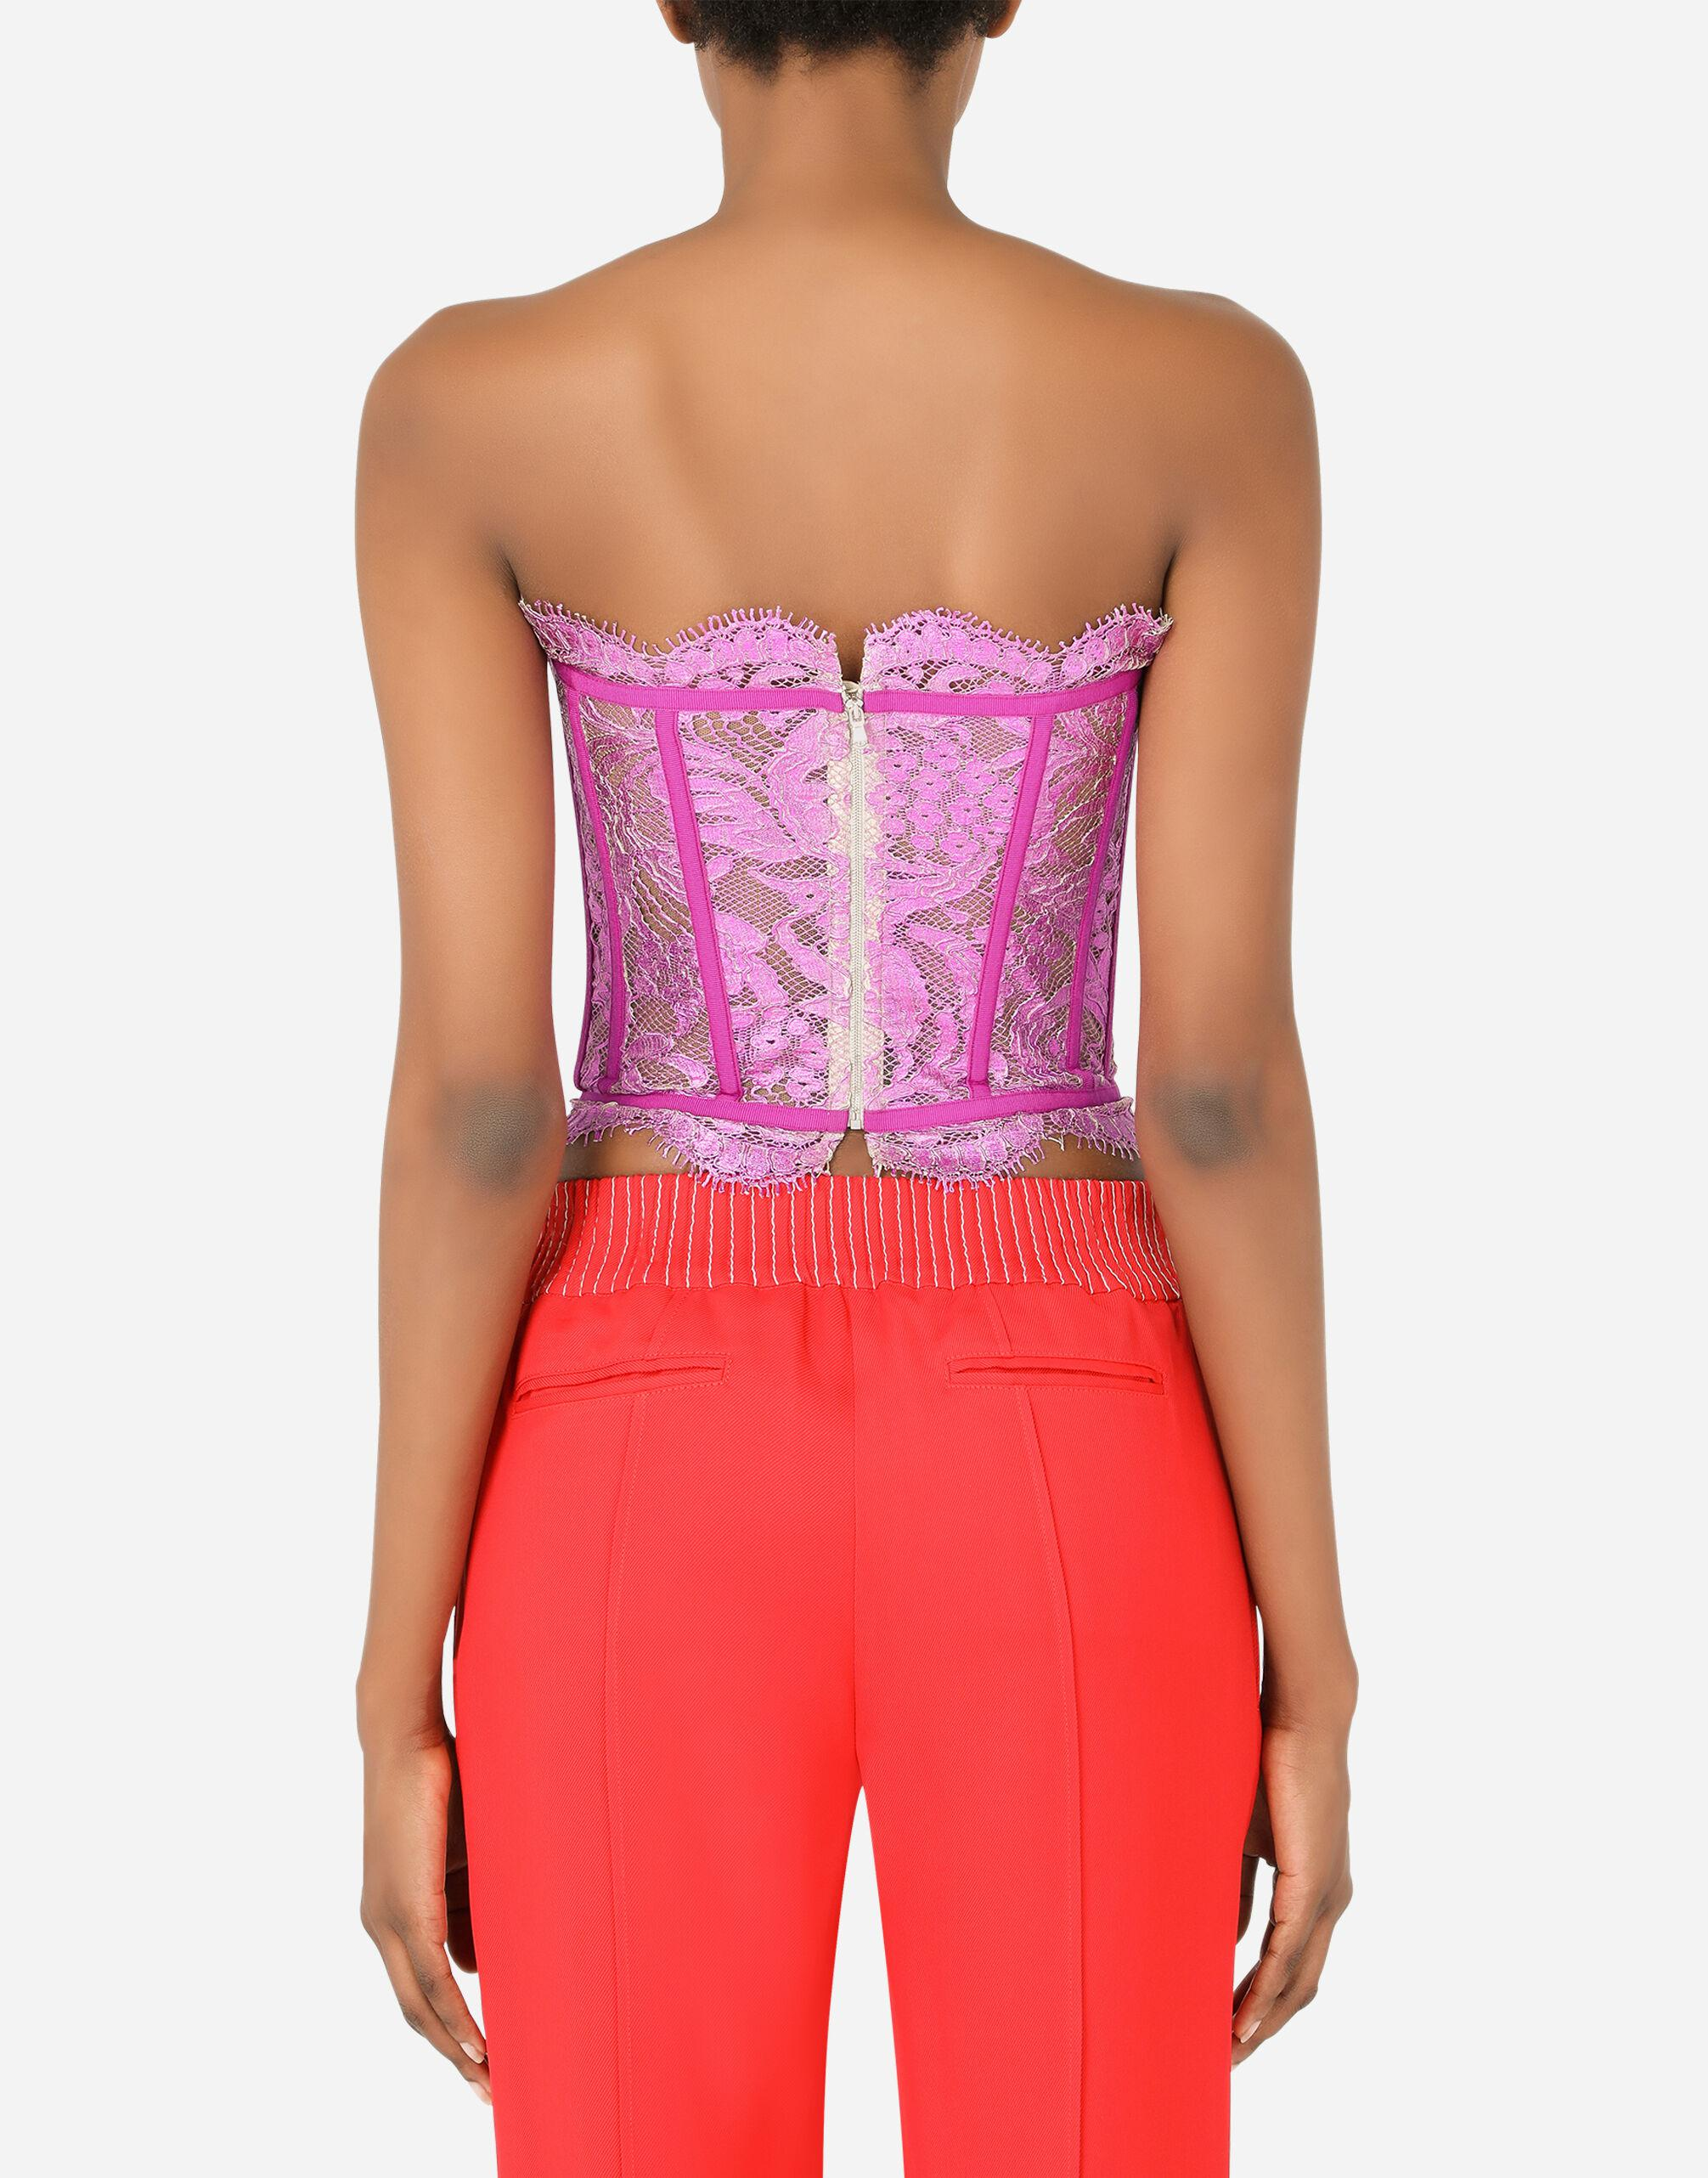 Laminated lace bustier 1